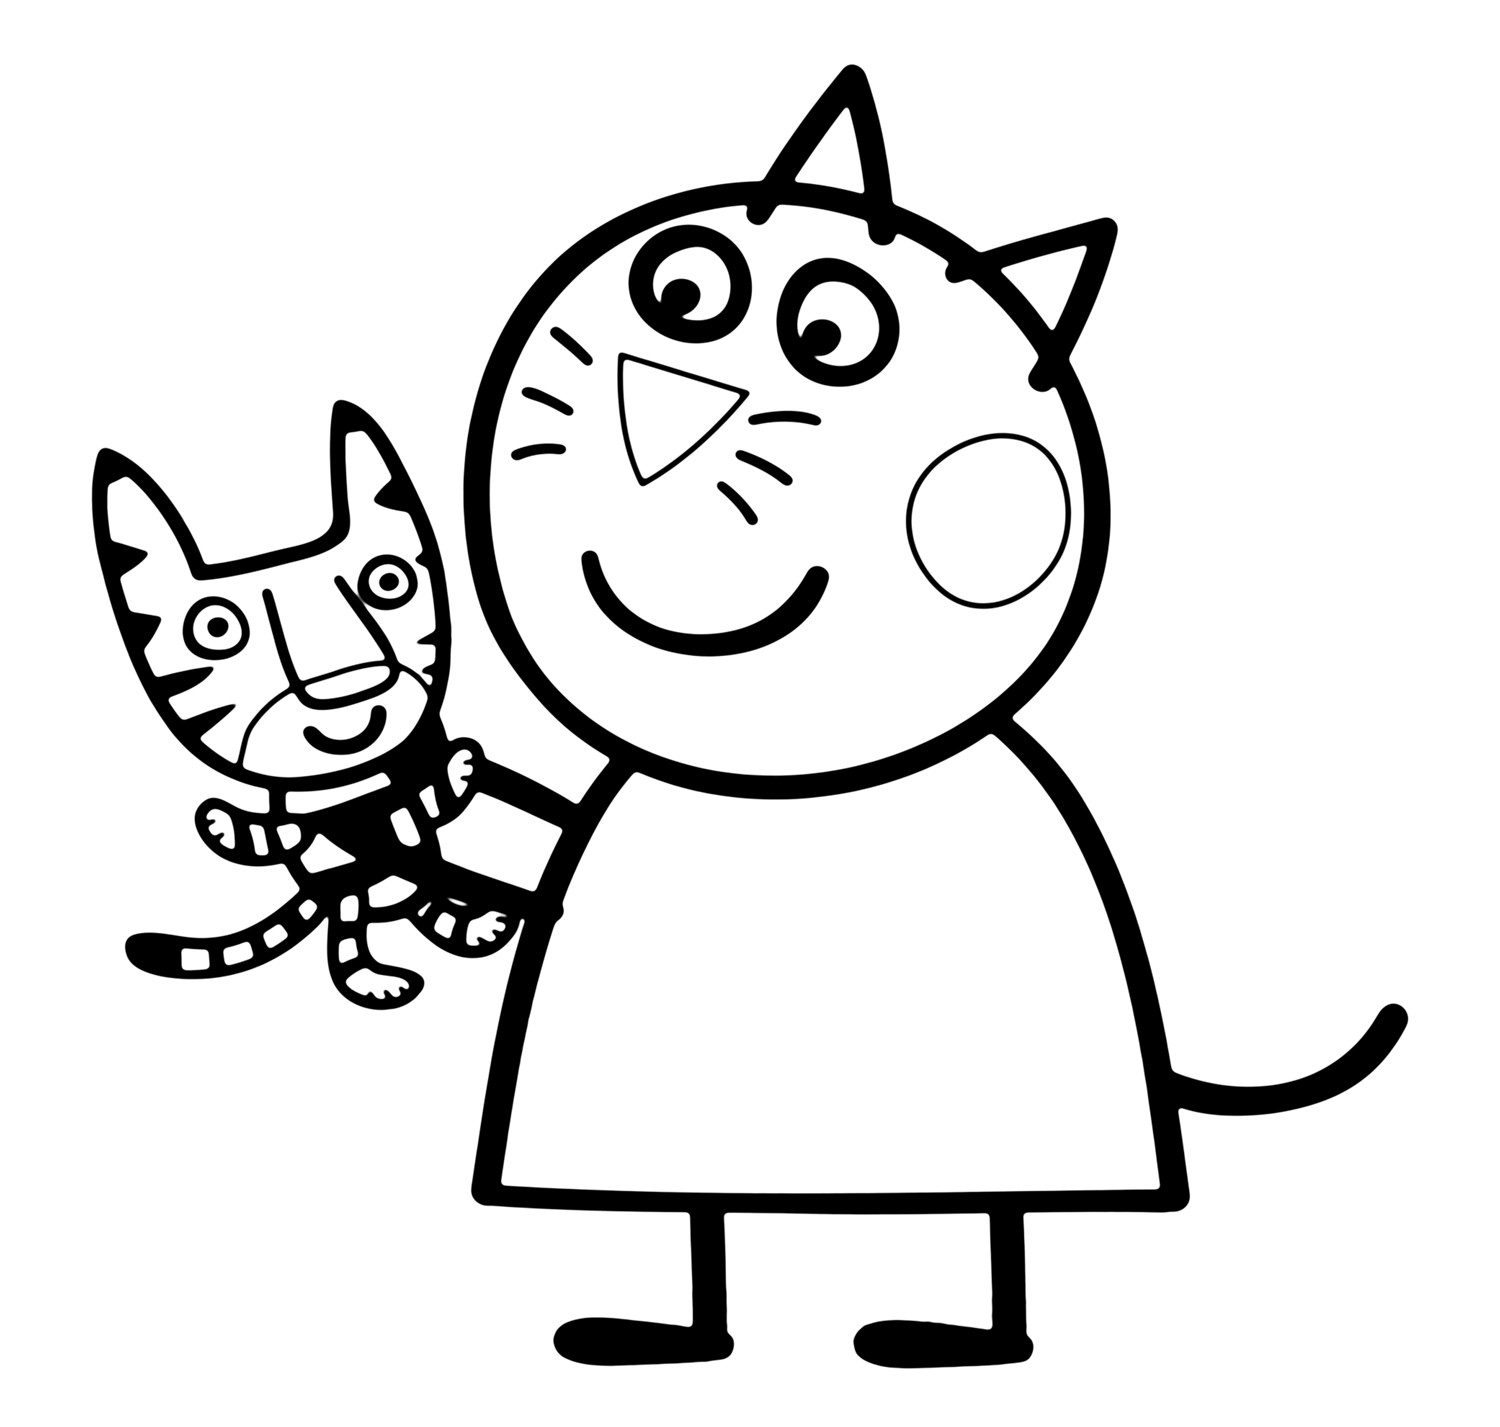 1500x1427 Peppa Pig Valentines Coloring Pages Best Of Peppa Pig Coloring